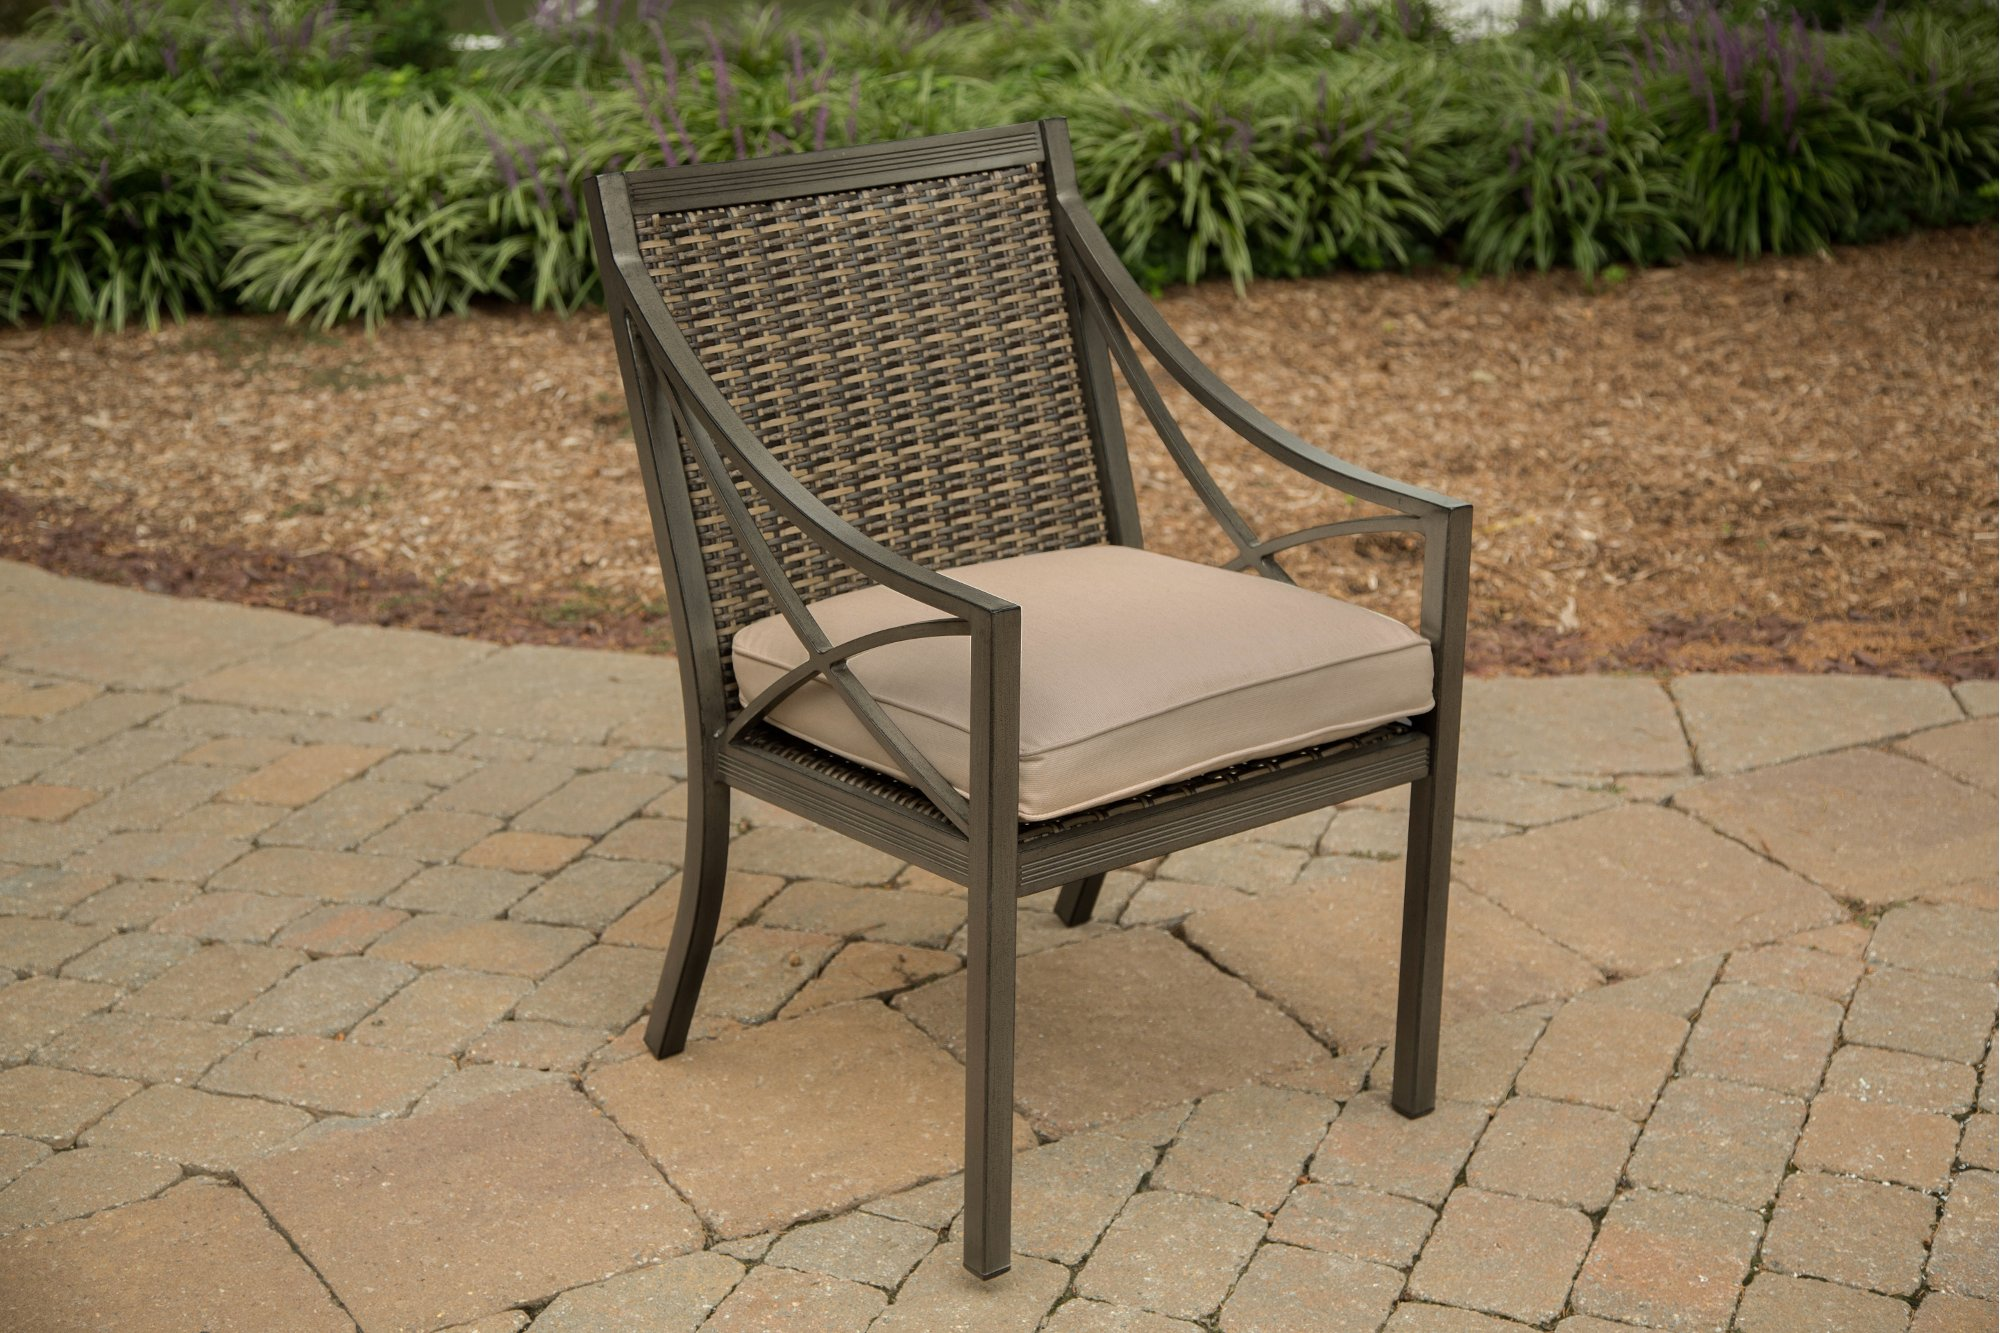 large of garden furniture chair outdoor set sets size patio rc comfy table willey metal wood